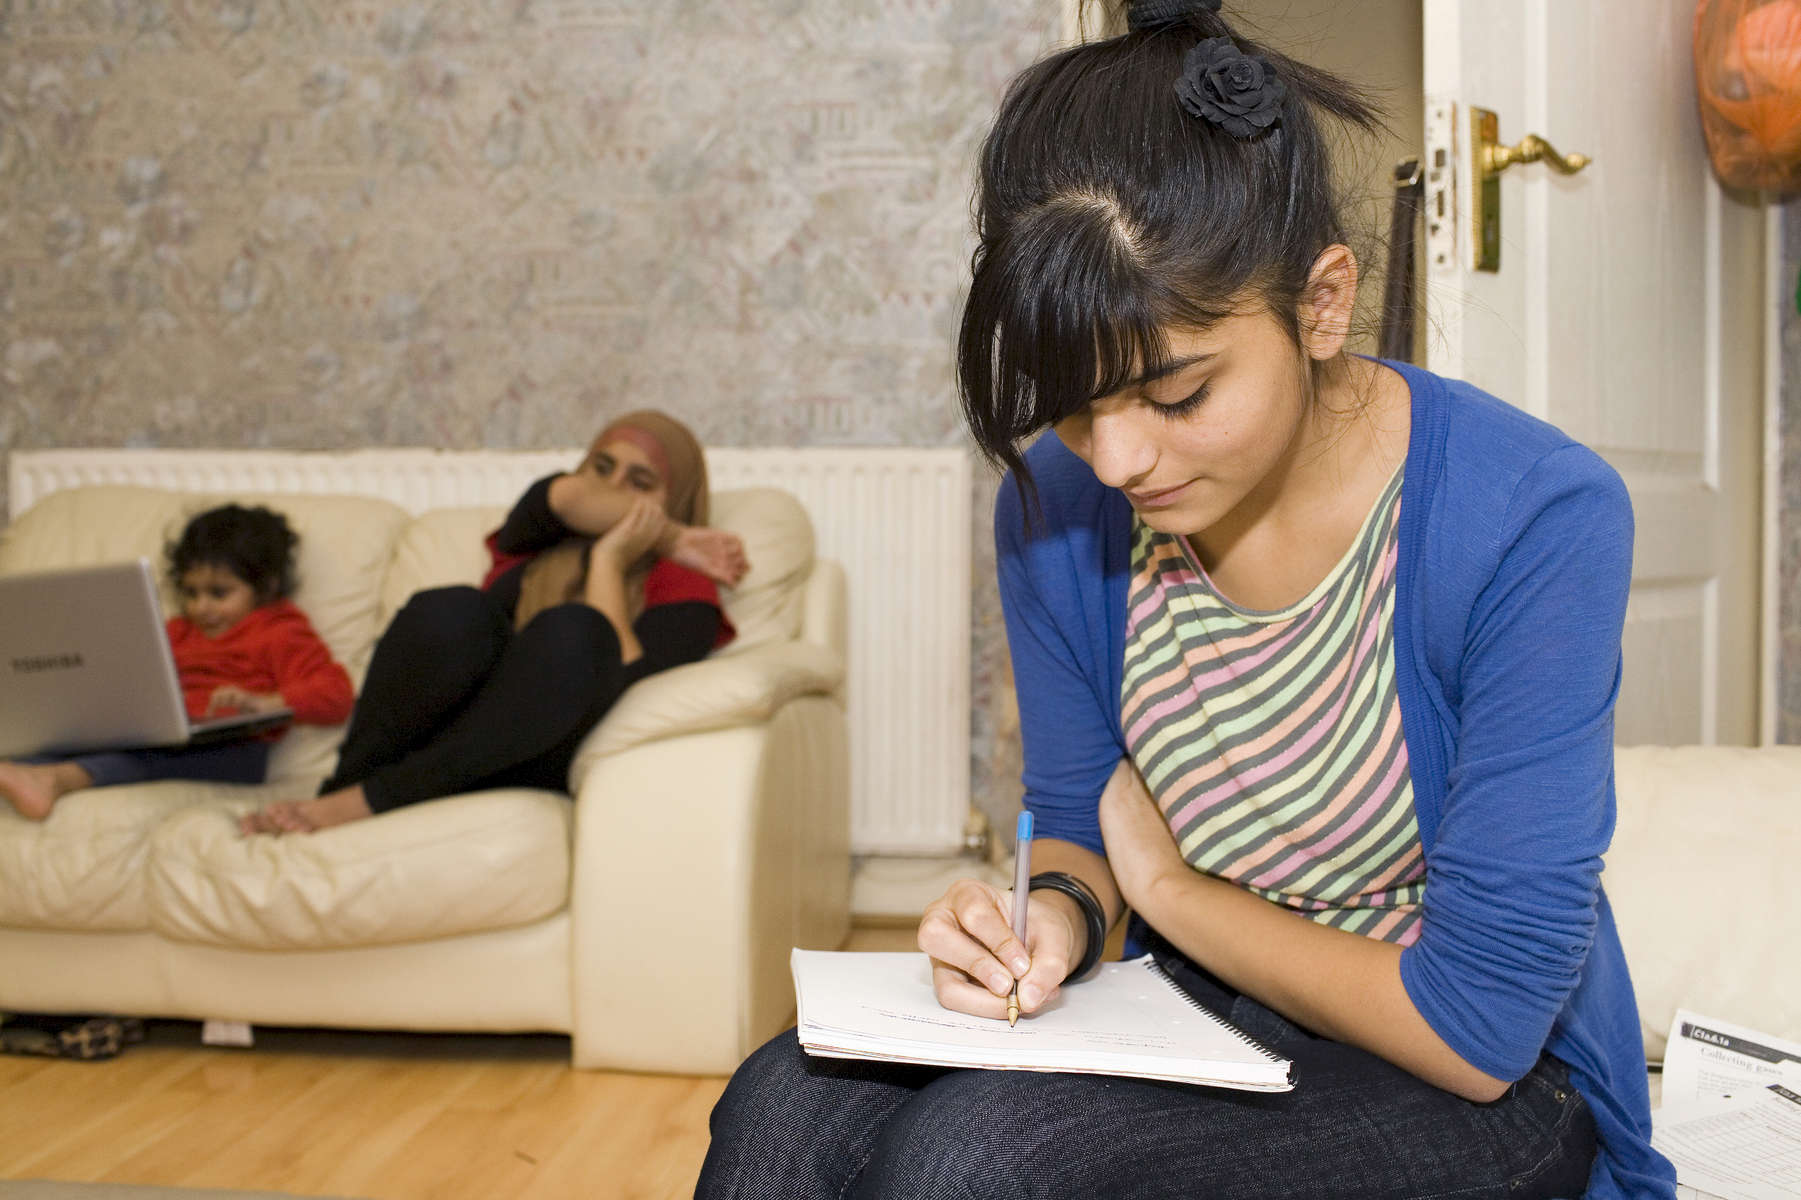 15 year old Laiba Abassi studying for her exams in the living room of the home where she lives with her mother Safia (40), father Khalid (43) and sisters Maira (14 pictured centre), Ahareem (10) and Fatimah (3 pictured left). Laiba is a 2nd generation migrant from Pakistan. Her mother arrived from the capital Islamabad aged 3 in 1972, her father arrived in 1995. It is a three bedroom home, Laiba and her parents each have one, her three siblings share the other all sleeping in one big bed.Villiers High School is in the town of Southall. It has a very wide ethnic diversity. 45 different 1st spoken languages are listed among the 1208 pupils. 25 ethnic groups are represented with Indian, Pakistani and Black-Somali the three highest.Southall is a suburban district of West London, England. The town has one of the largest concentrations of South Asian people outside of the Indian sub-continent. Over 55% os Southall's population of 70,000 is Indian/Pakistani, with less than 10% being White British.